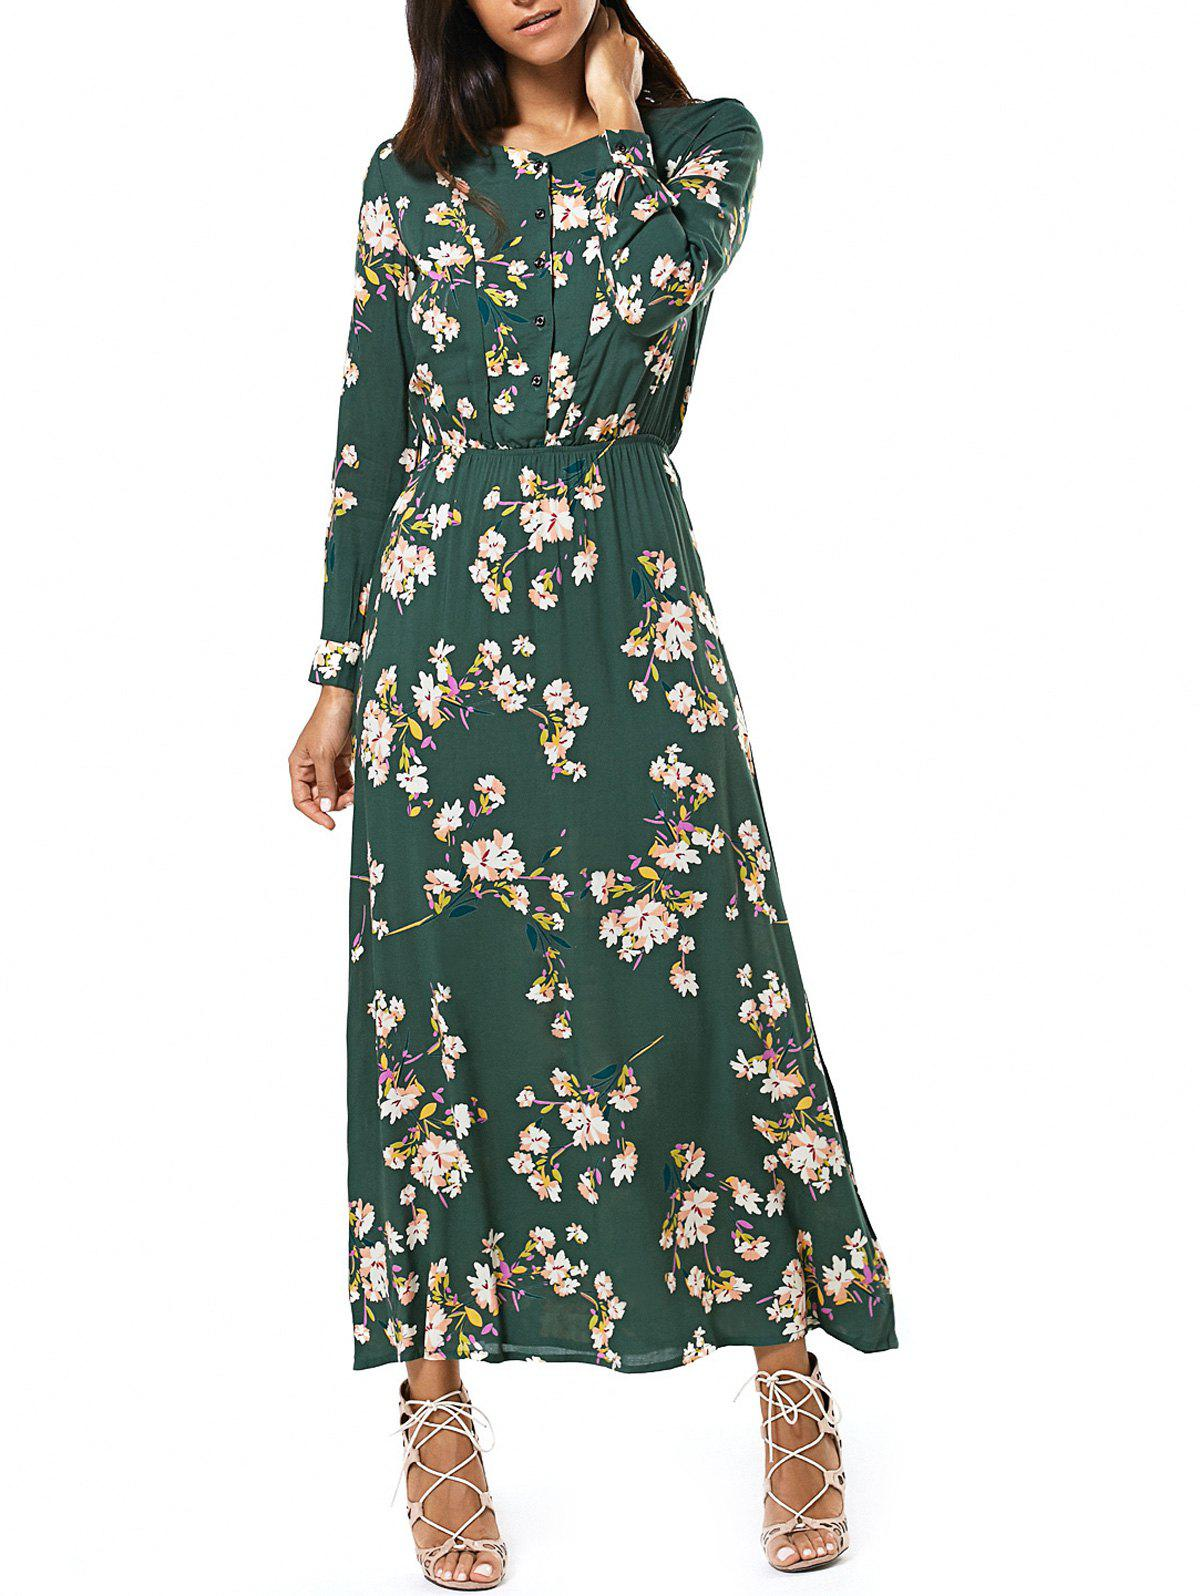 Long Sleeve Buttoned Floral Print Women's Maxi Dress exaggerate bell sleeve buttoned keyhole dress